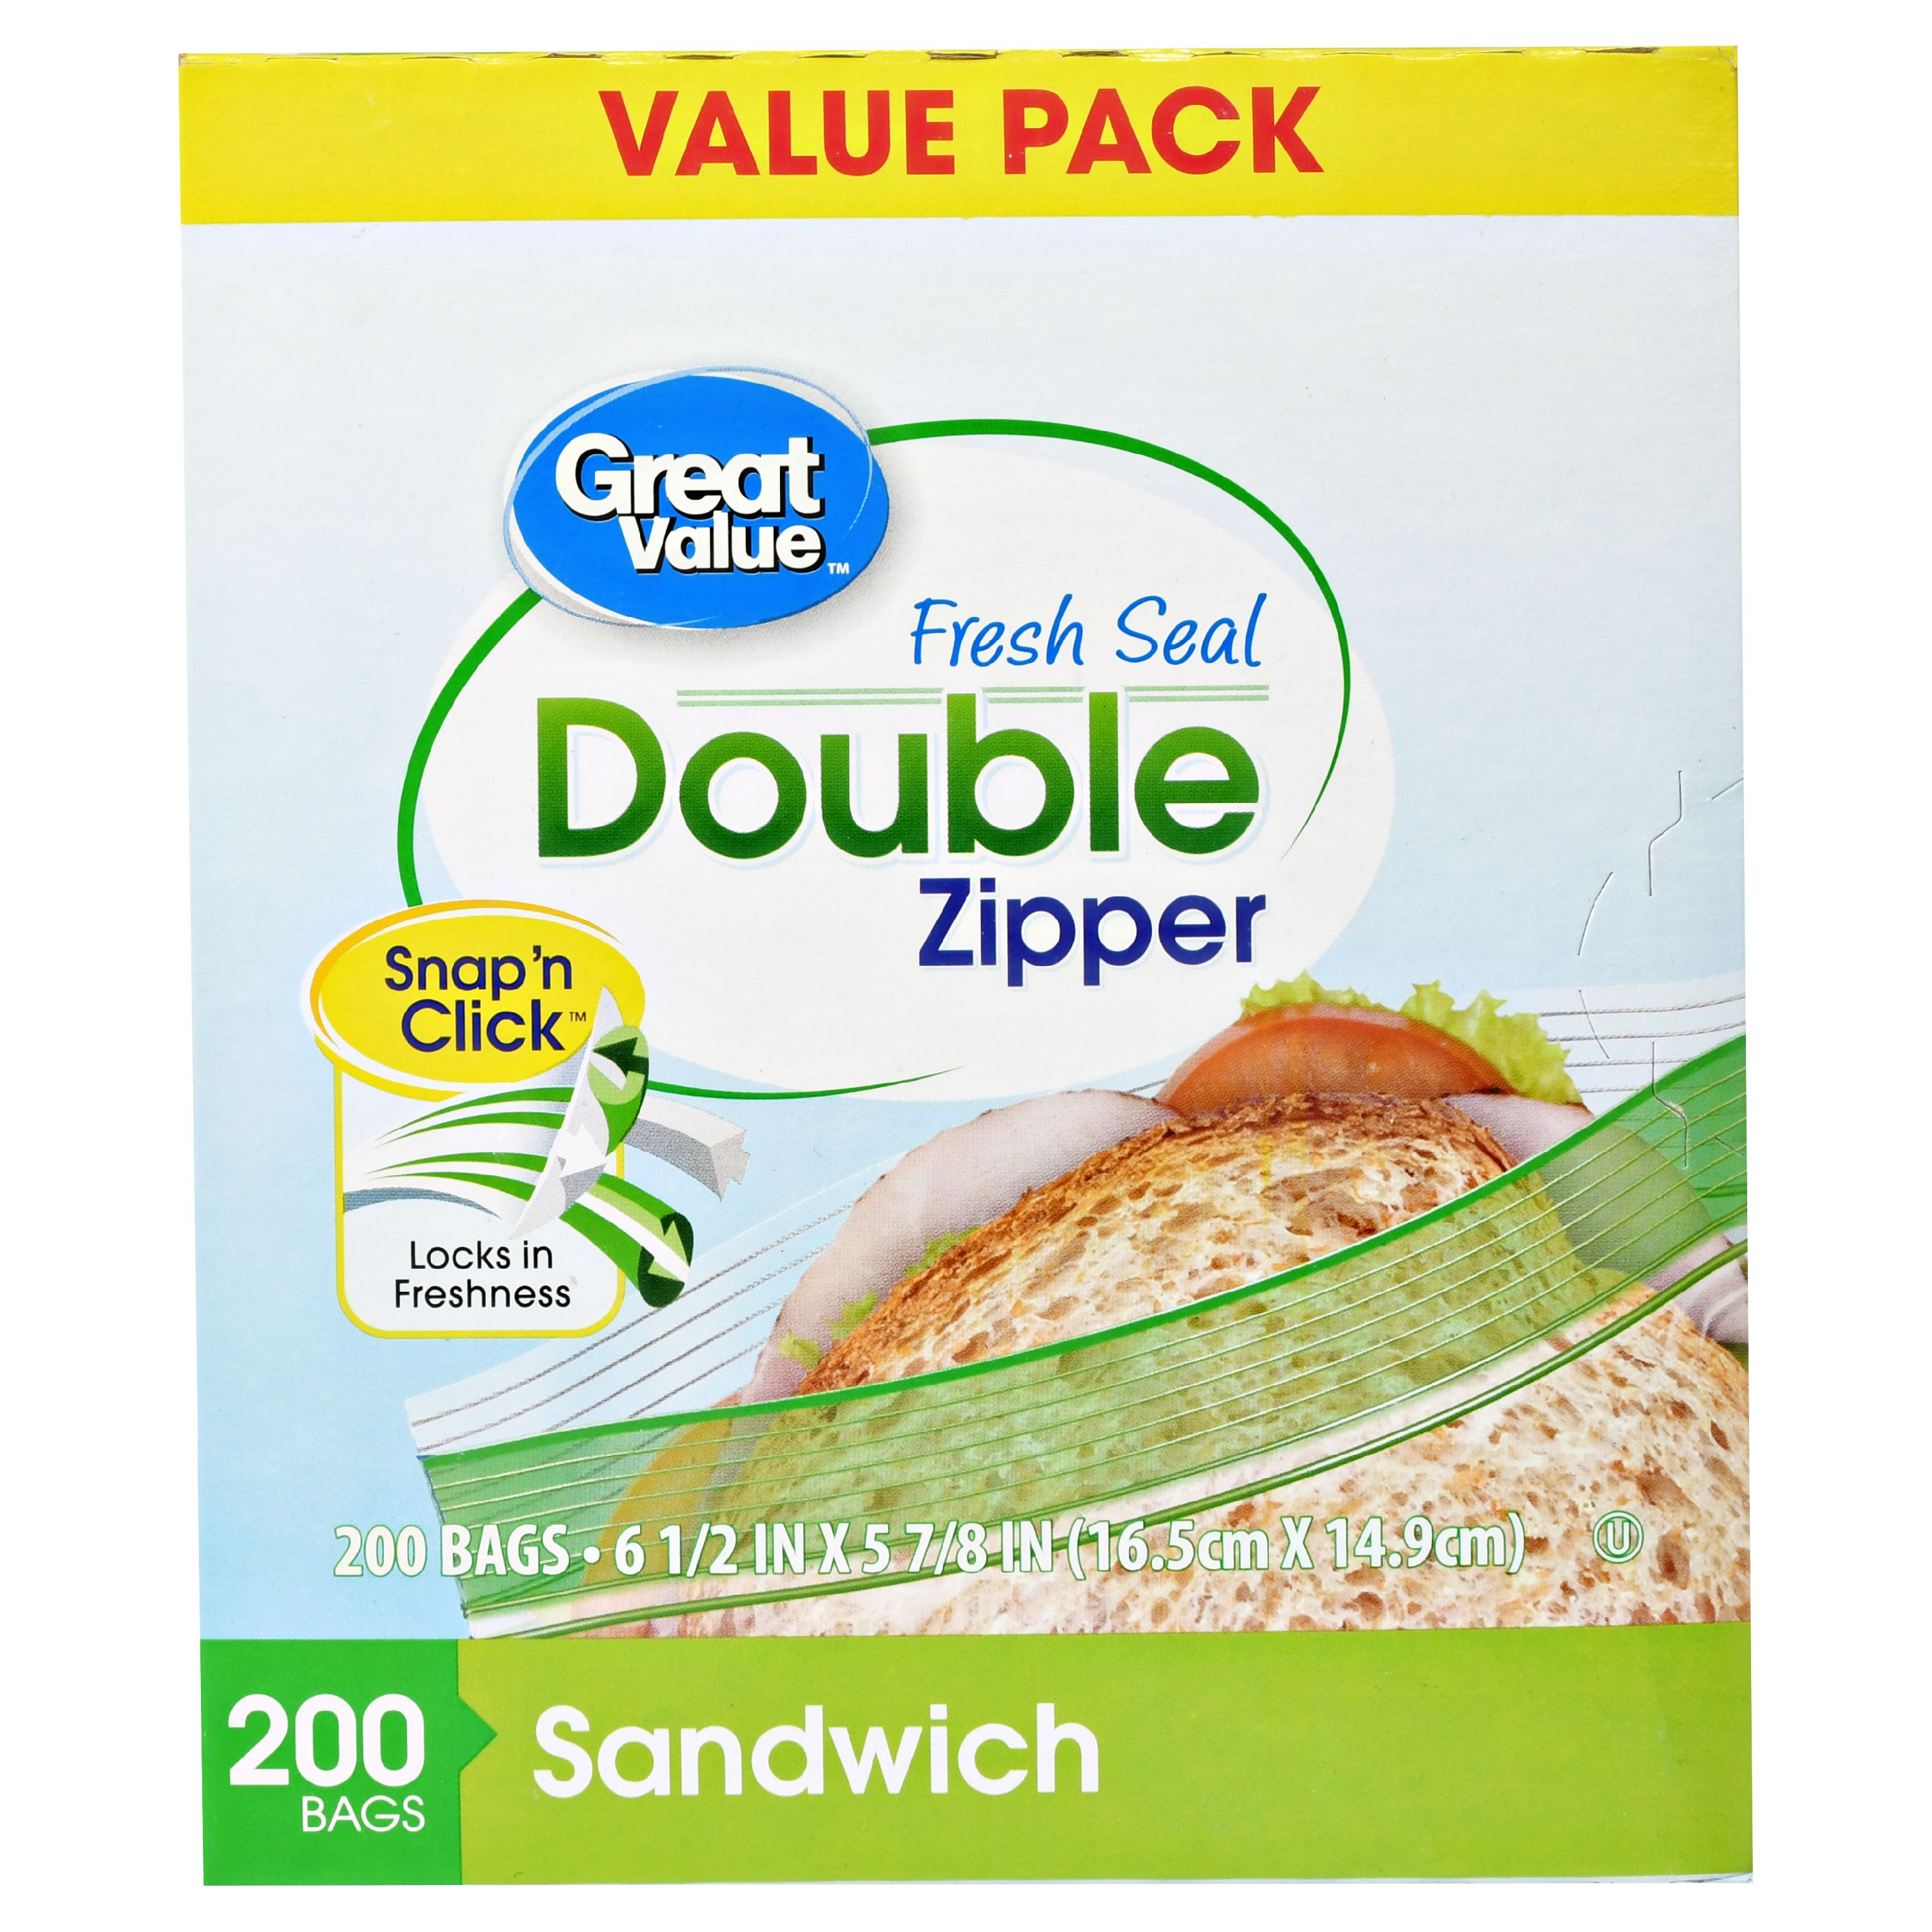 Great Value Double Zipper Freezer Food Storage Bags, Sandwich, 200 Count